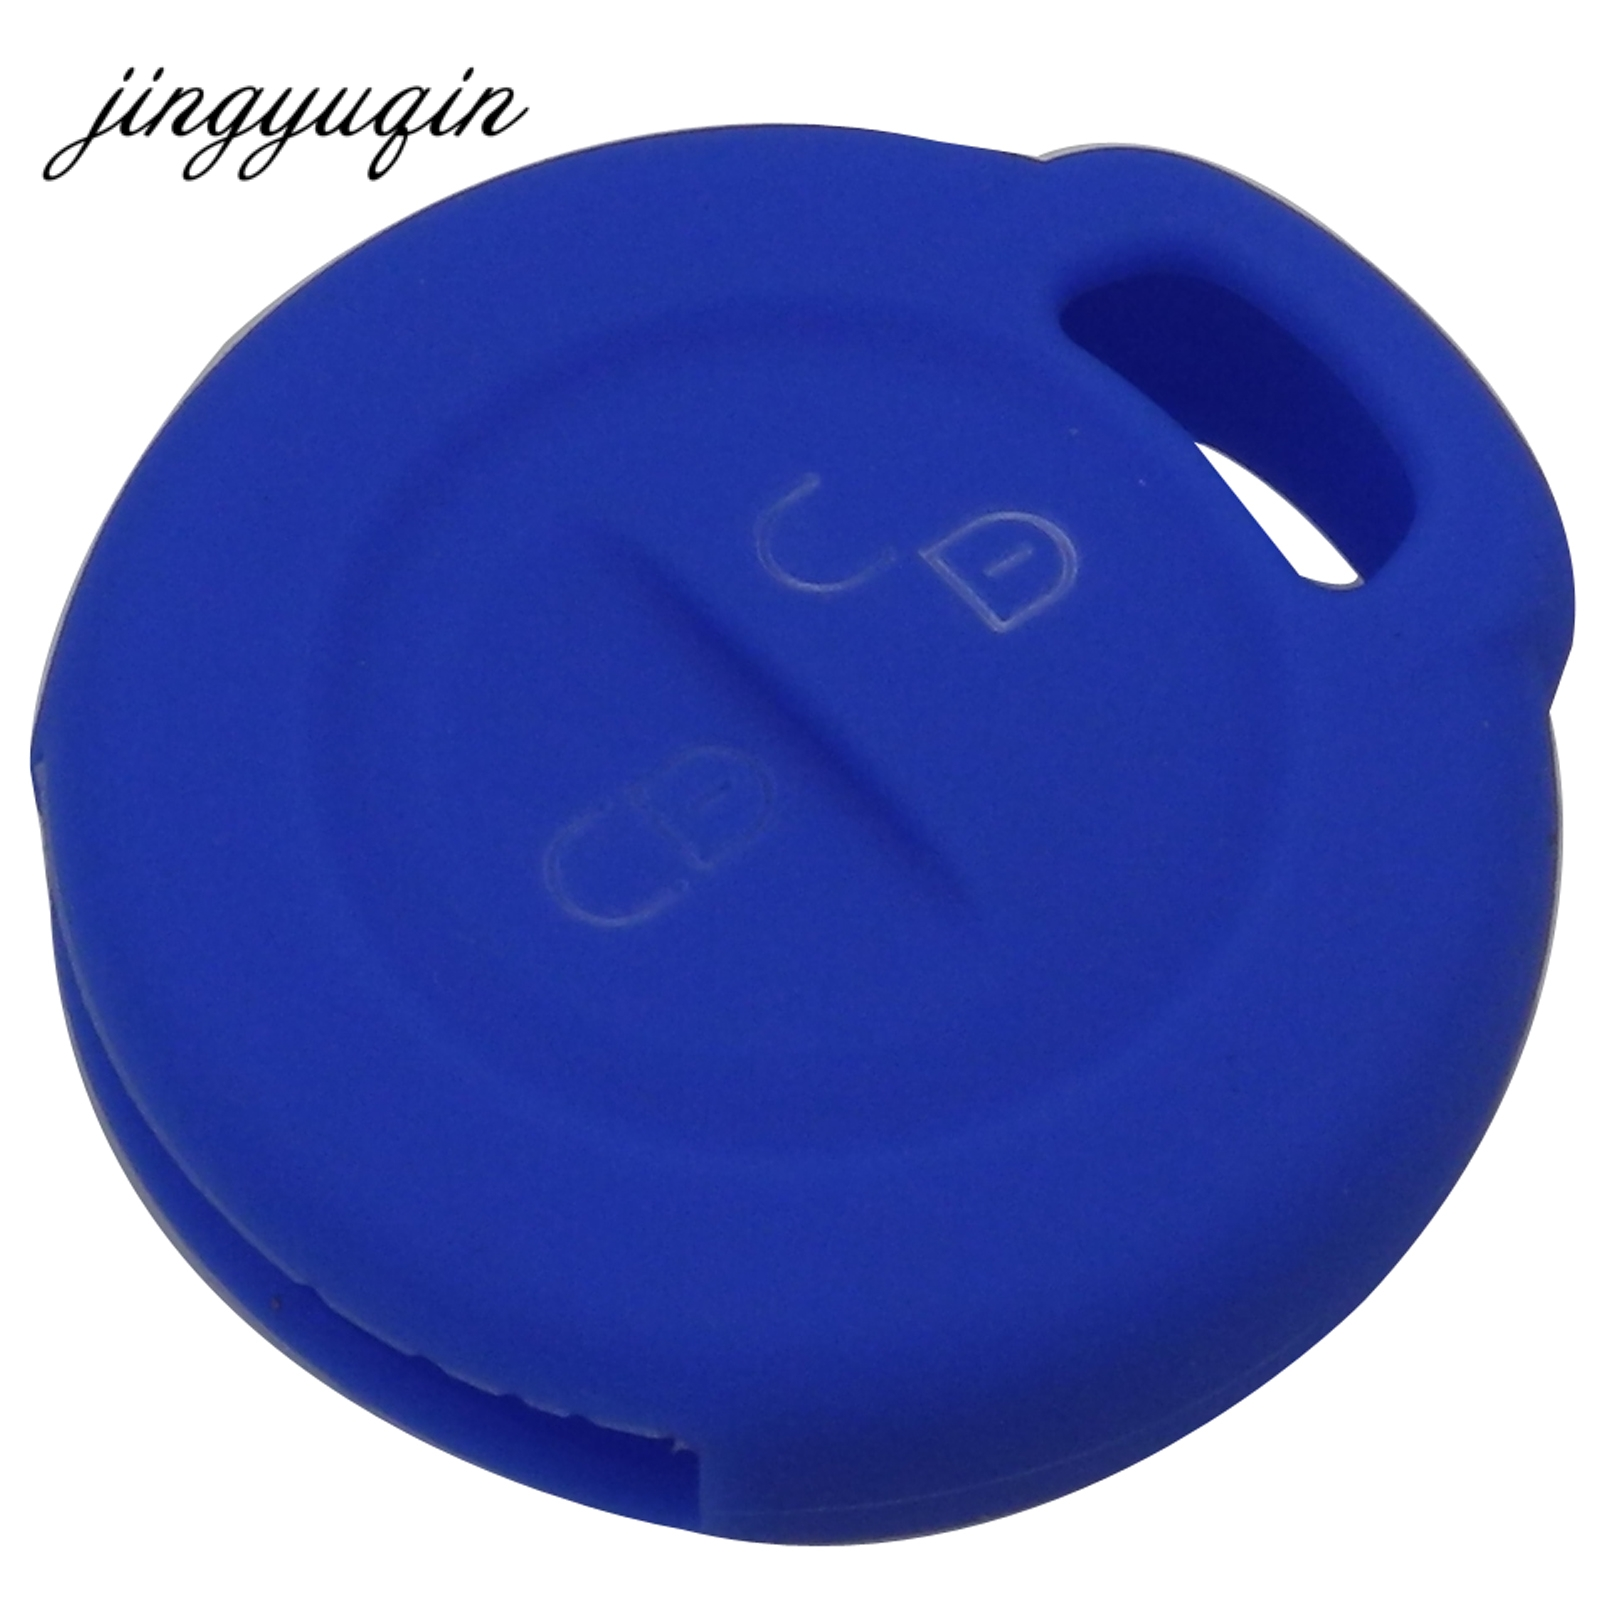 Image 4 - jingyuqin 2 Button Silicone Key Fob Cover For Mitsubishi Colt Warior Carisma Spacestar 2 BTN Remote Key Case-in Key Case for Car from Automobiles & Motorcycles